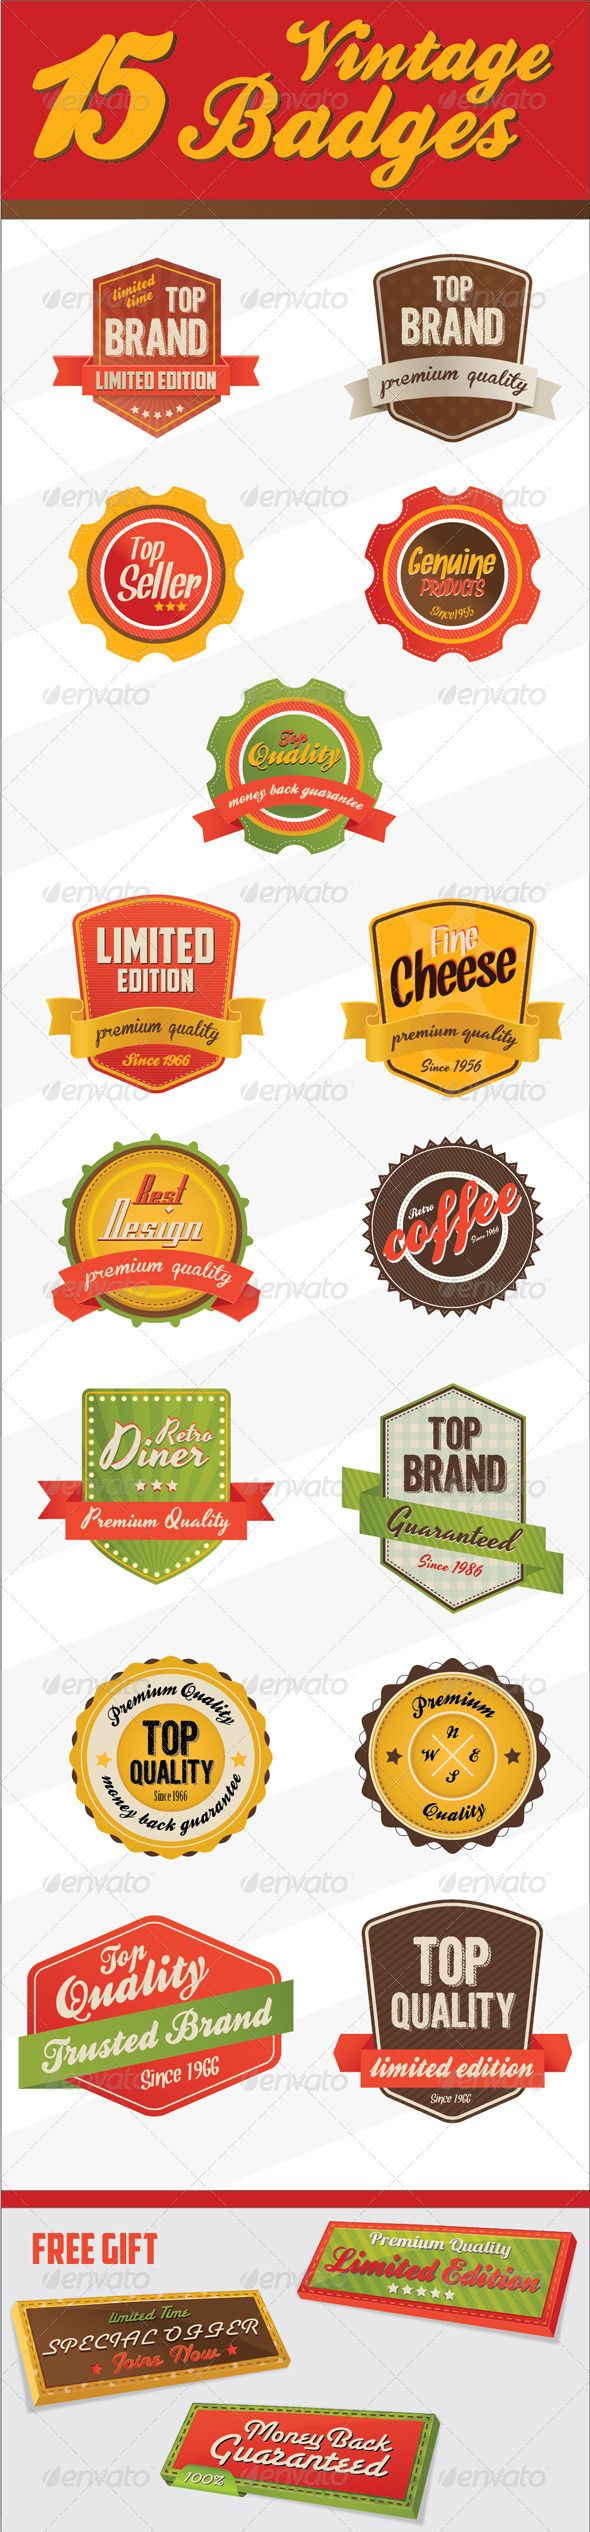 Retro Vintage Badges & logo  #GraphicRiver         15 Retro Vintage Badges customizable & organized 100% Vector and are completely editable.  	 Badges are perfect to use as logos, buttons or as promotion graphics for your website.